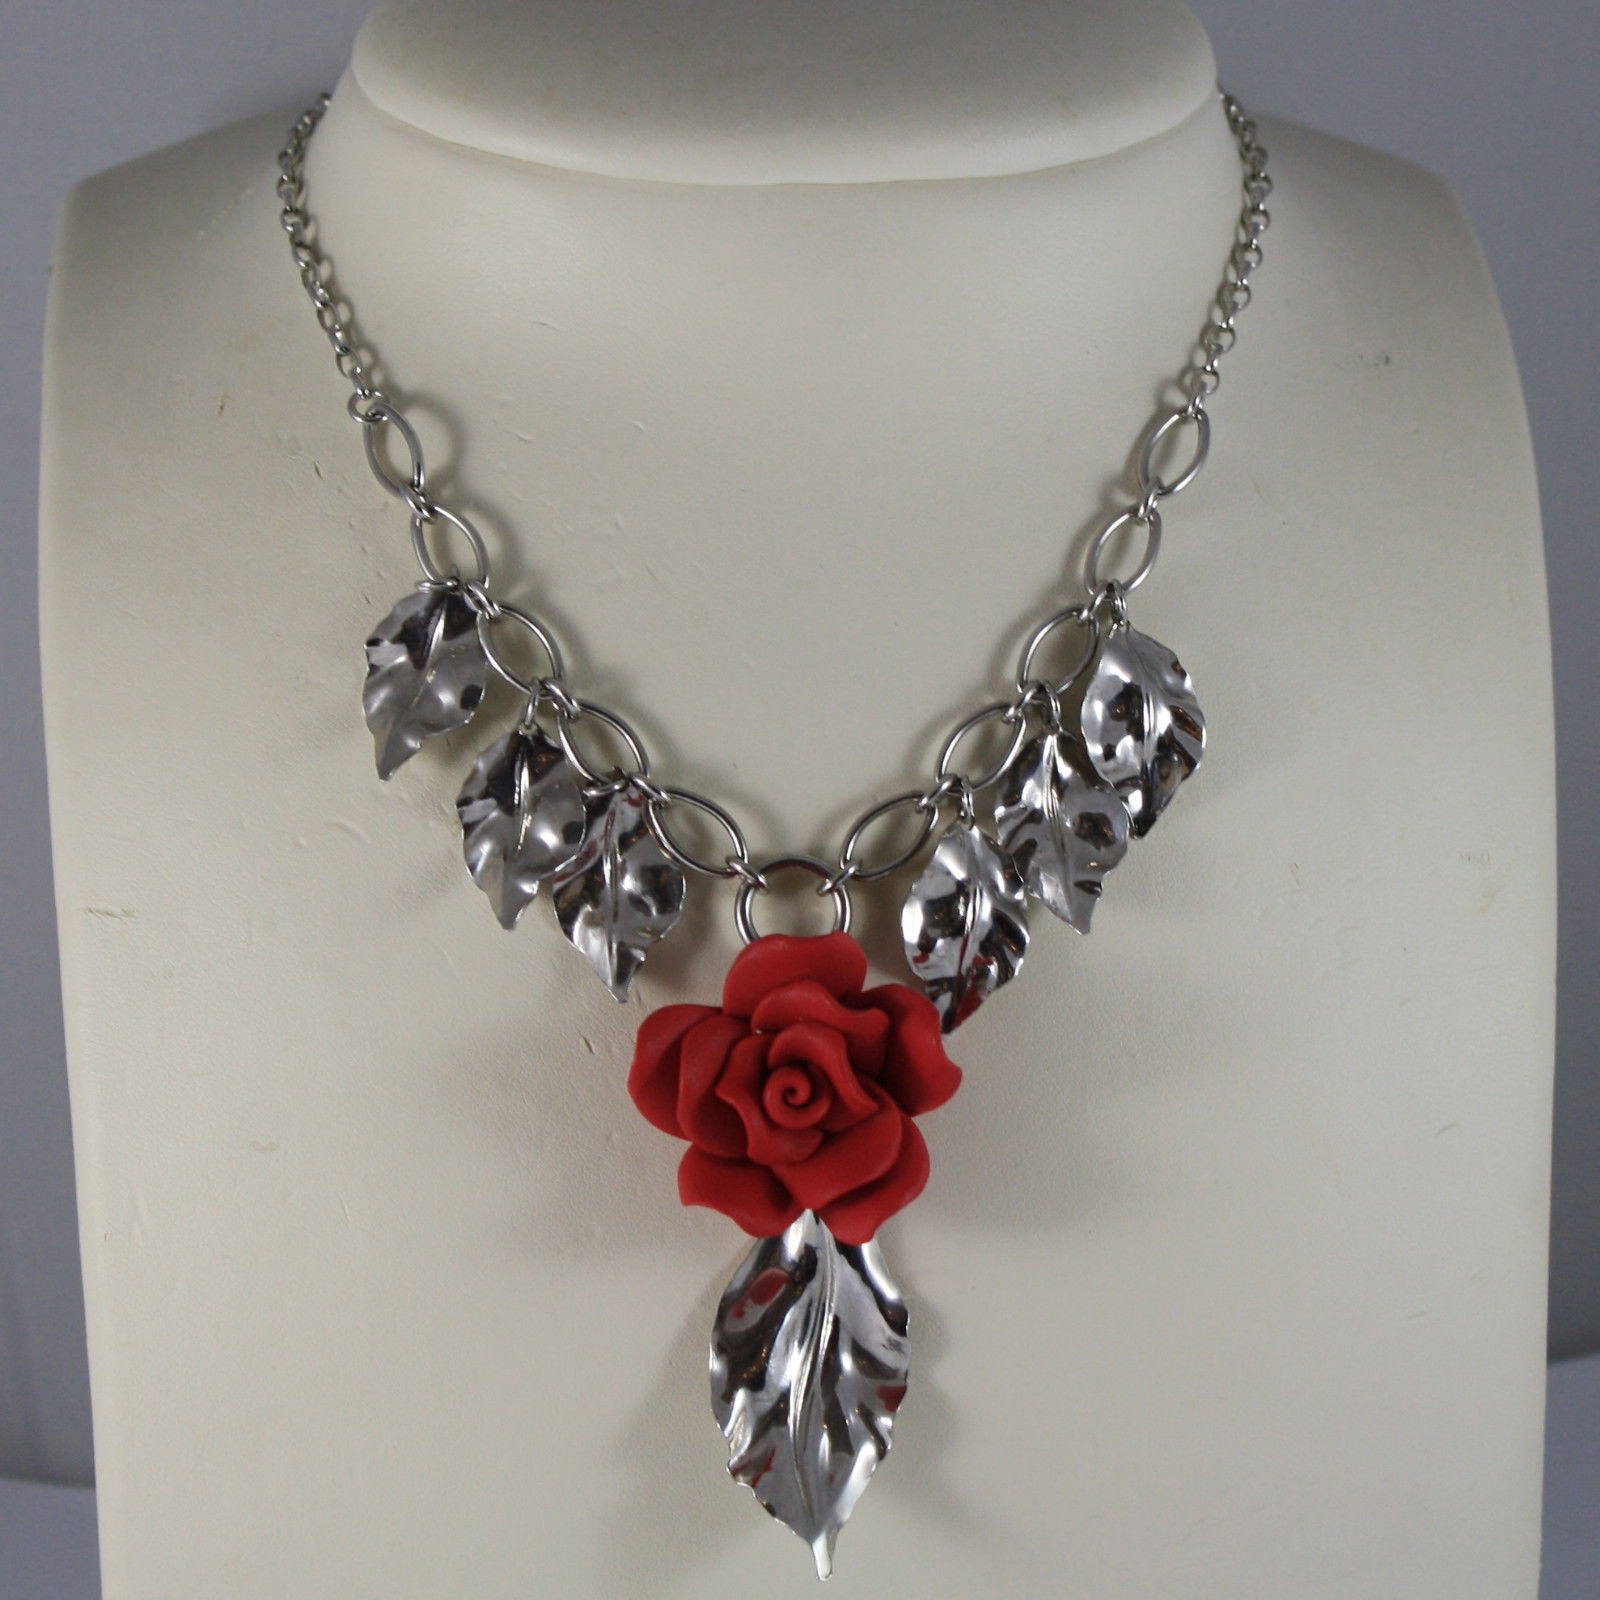 .925 RHODIUM SILVER NECKLACE WITH RED RESIN ROSE AND LEAVES